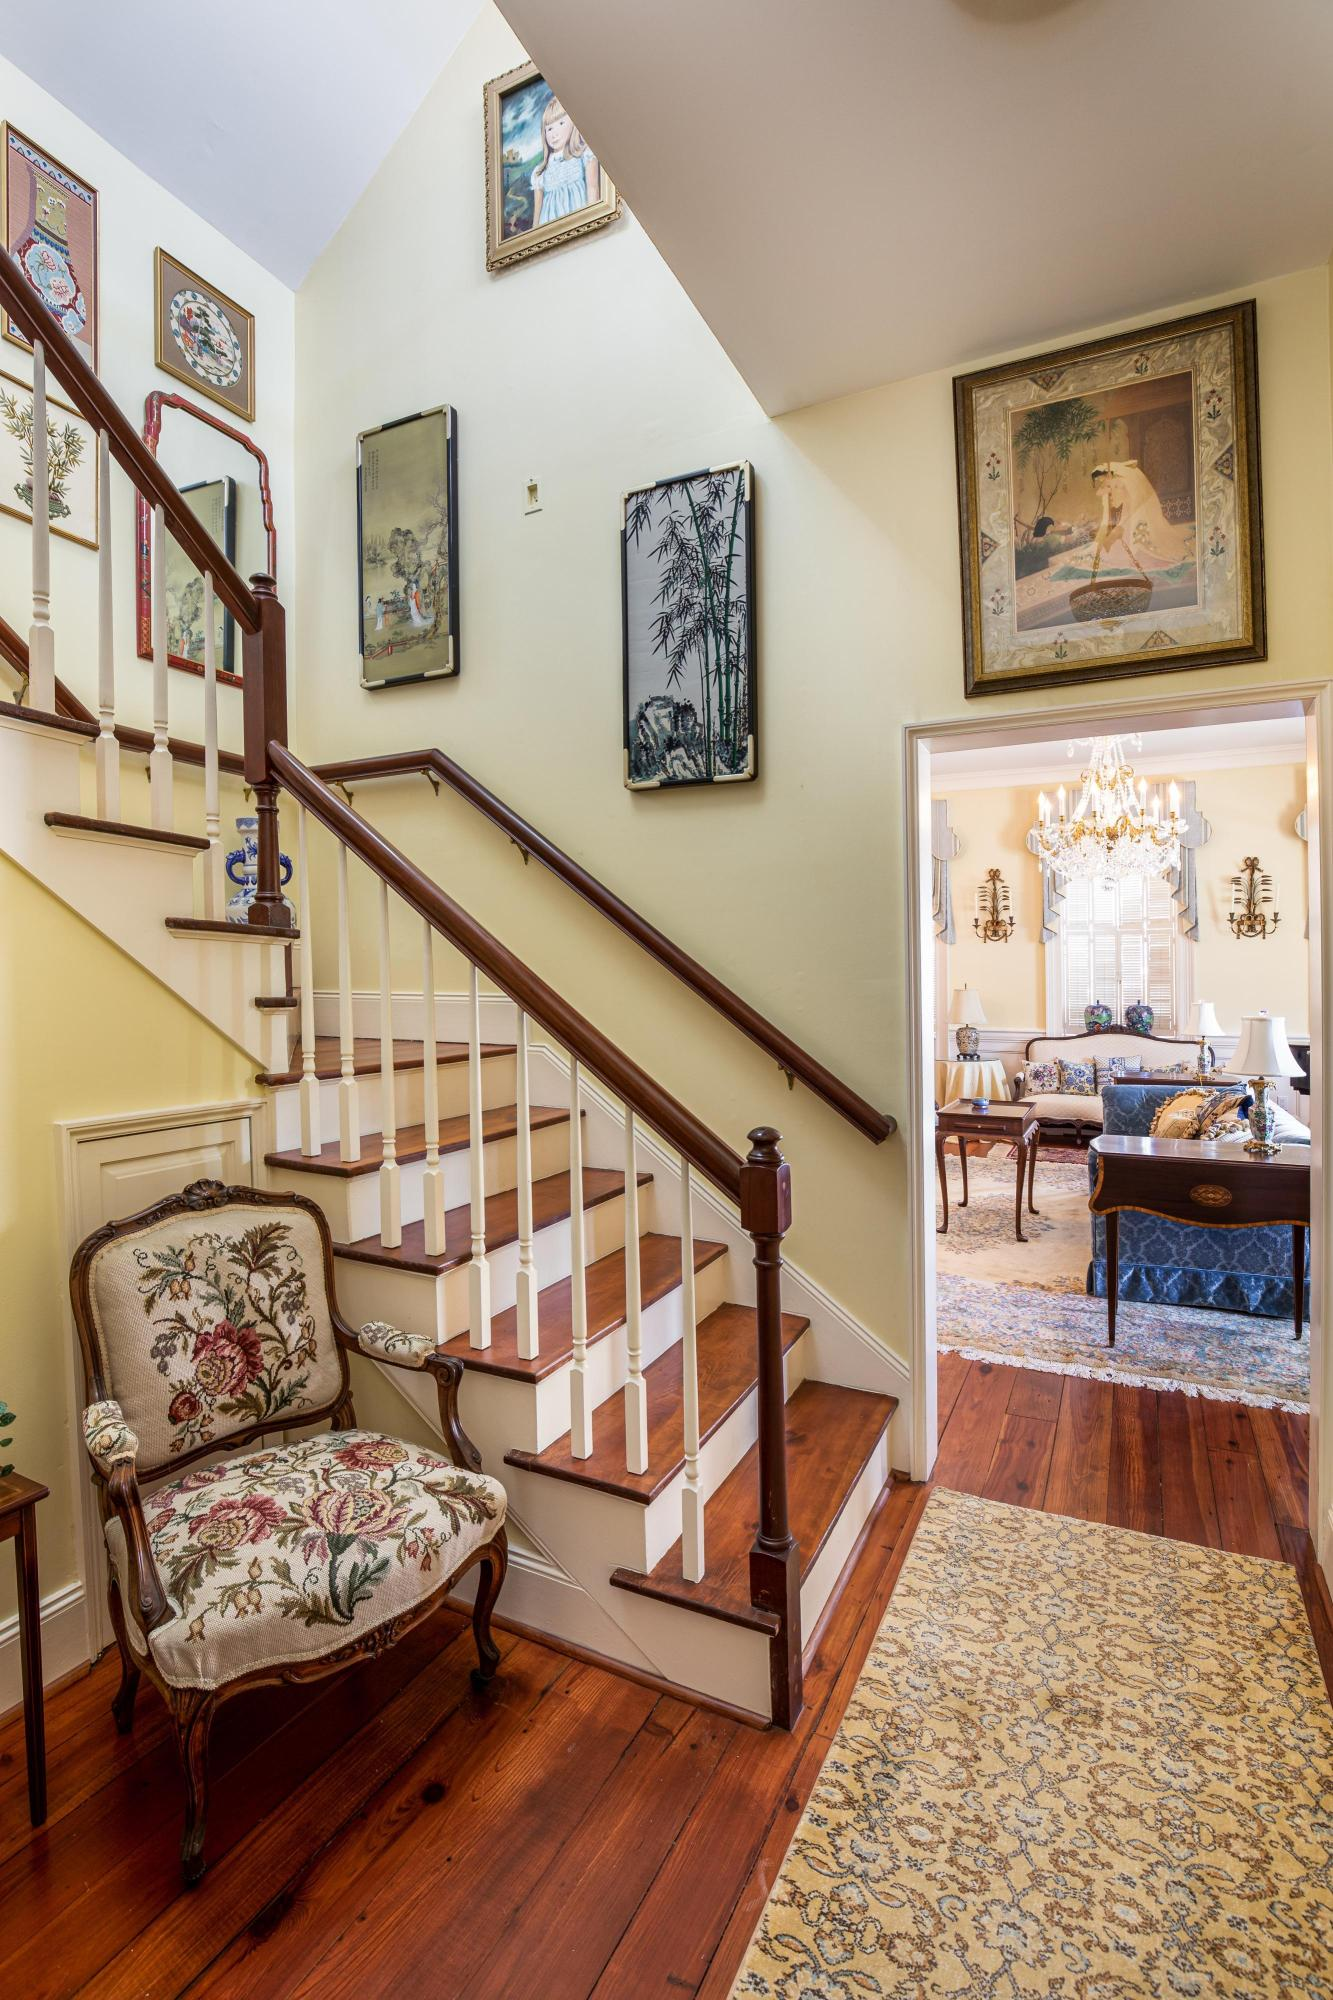 South of Broad Homes For Sale - 5 Legare, Charleston, SC - 24